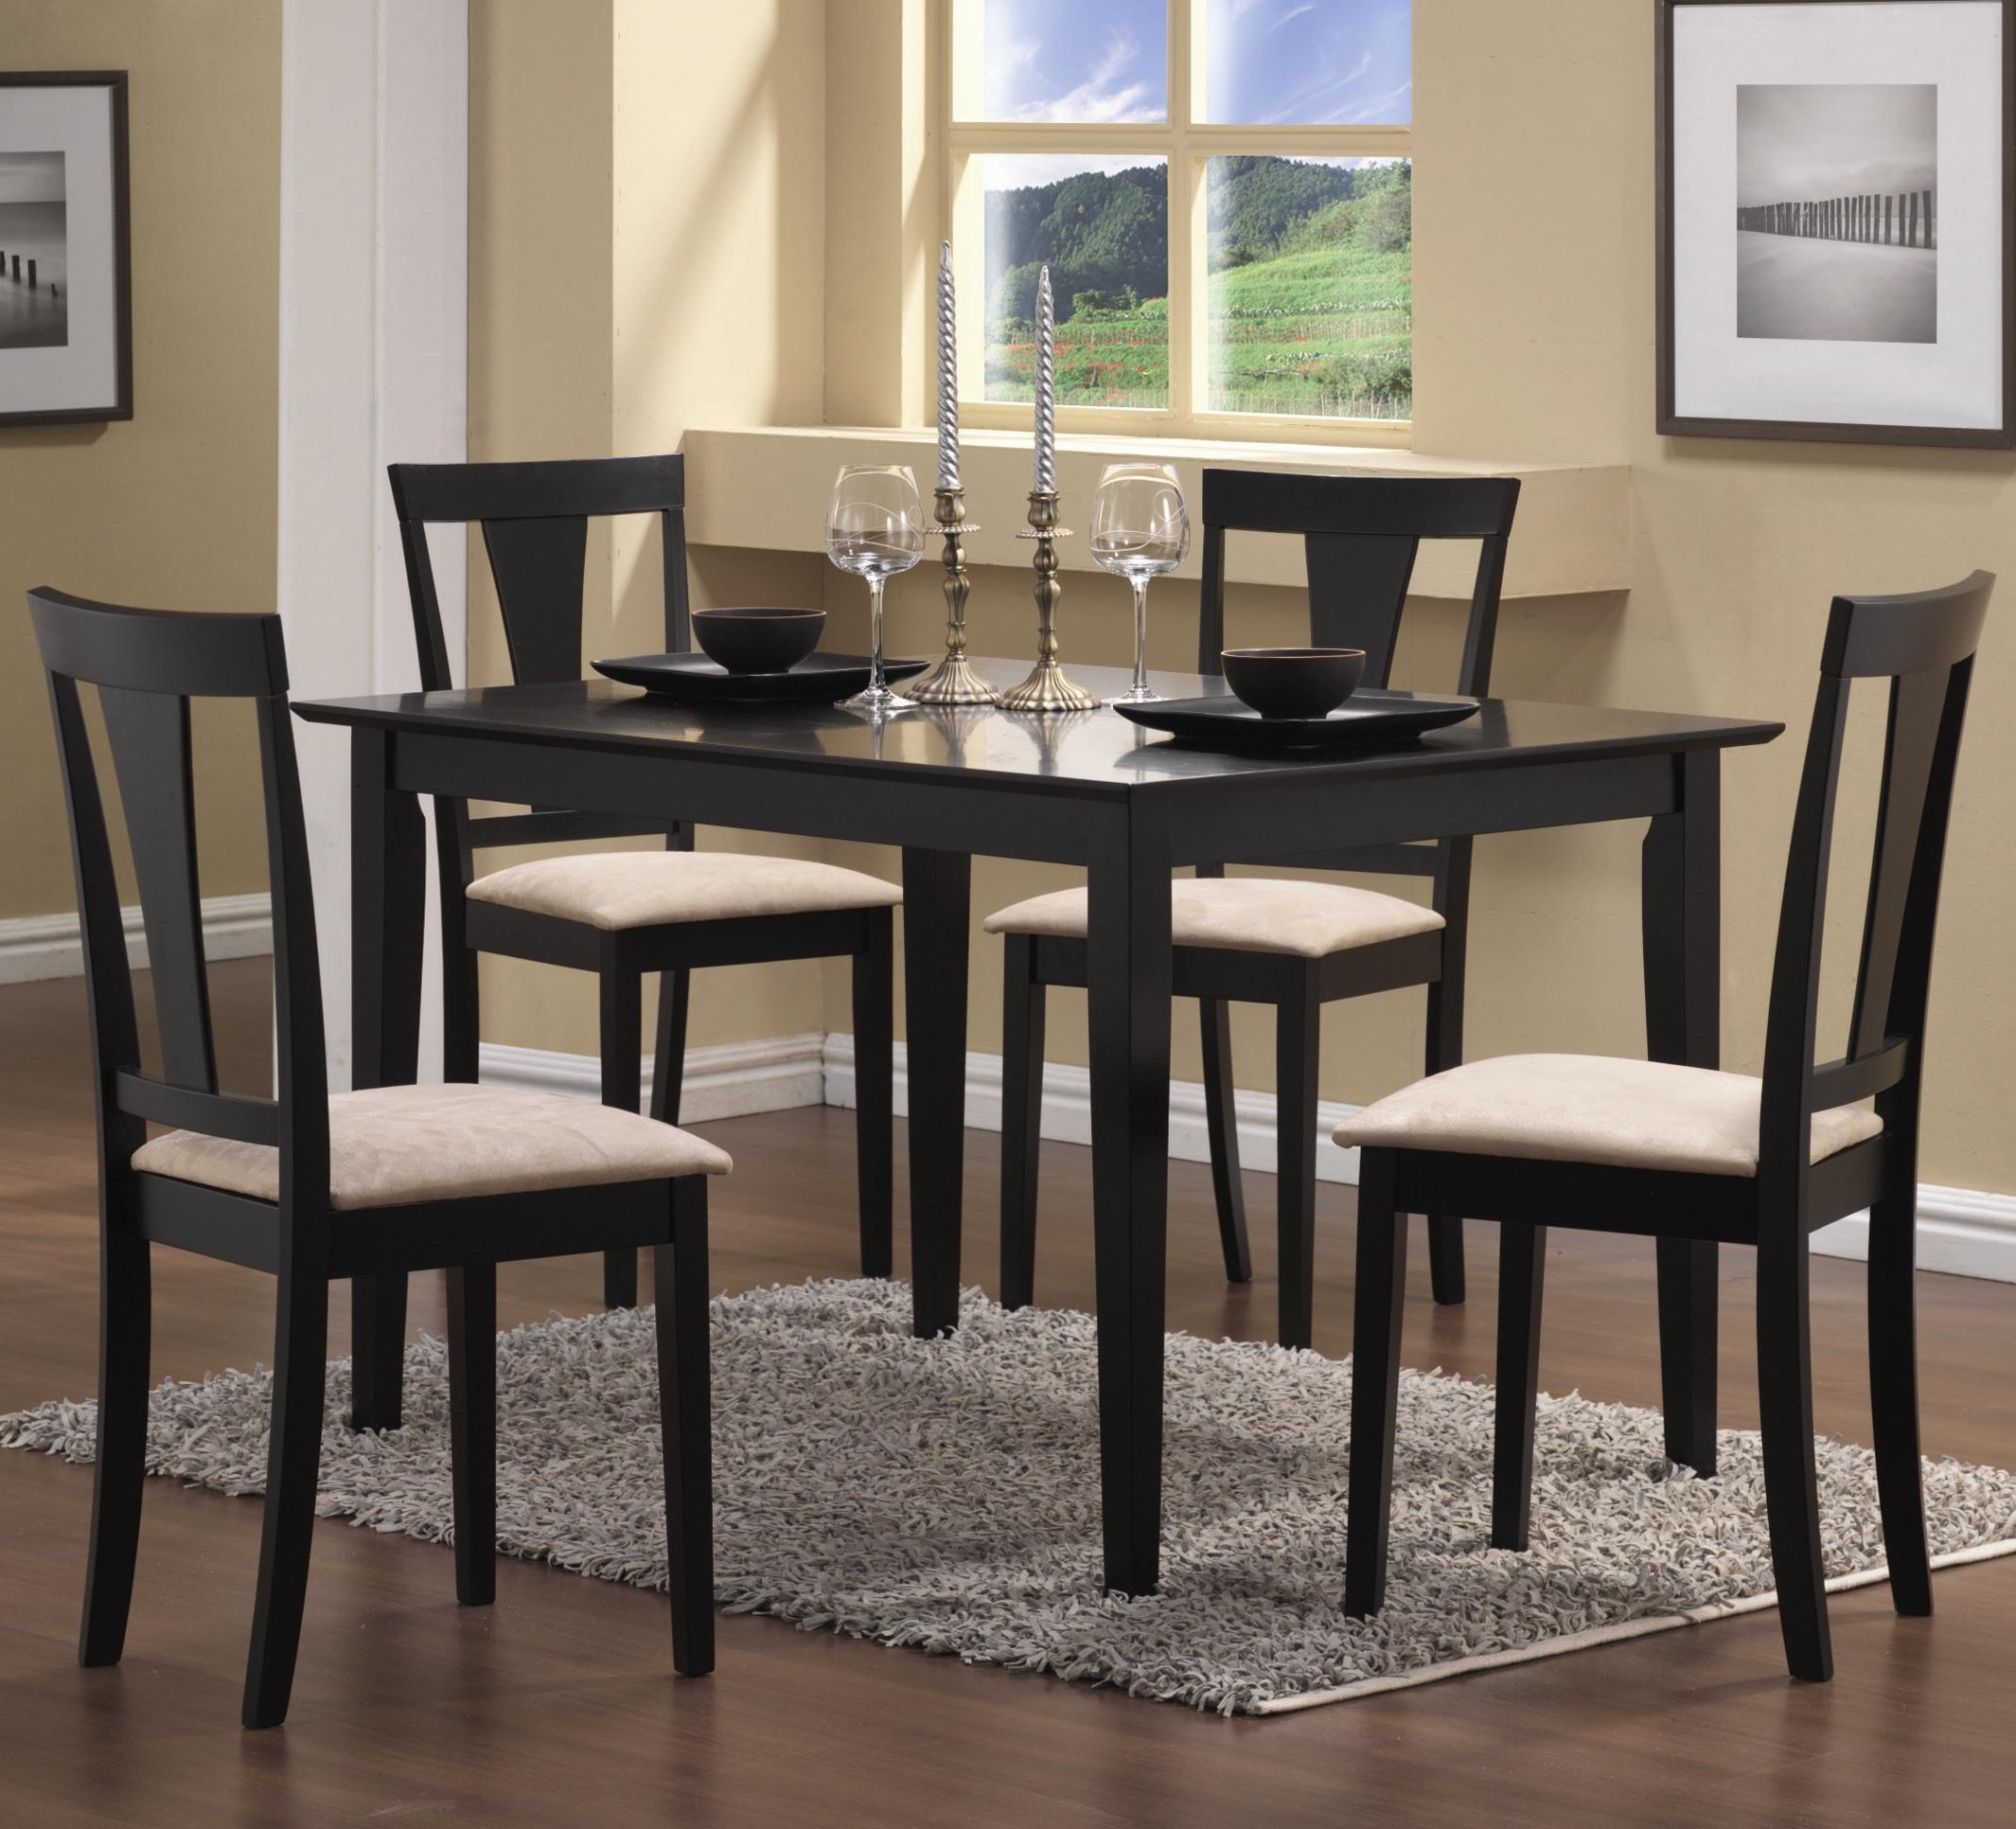 Dining Room Sets Kijiji Toronto Dining Room Designs Intended For Layjao